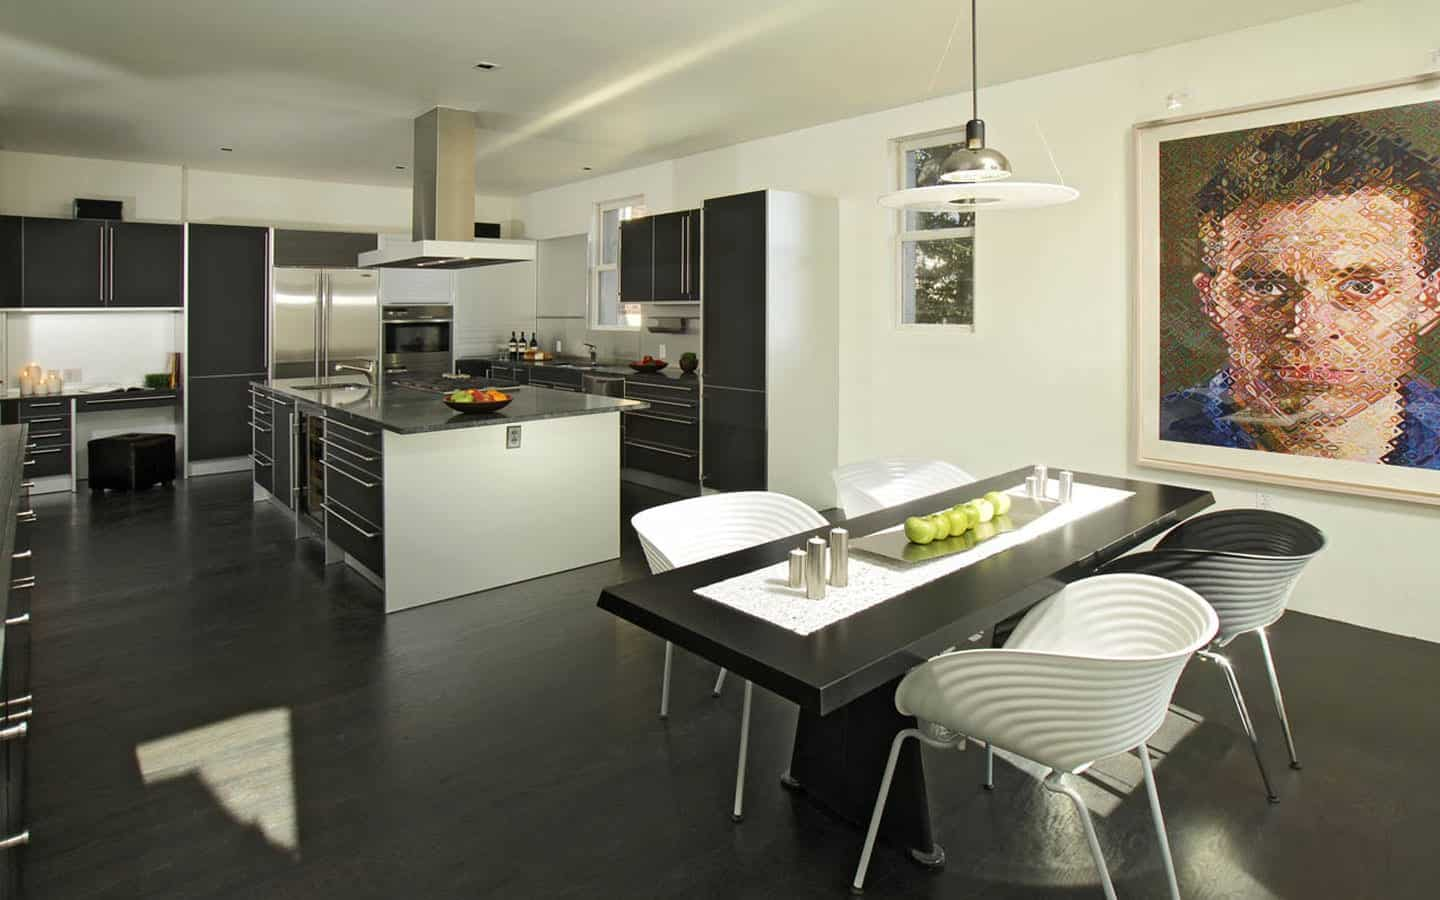 Spacious dine-in kitchen featuring black hardwood flooring and a black dining table for four.